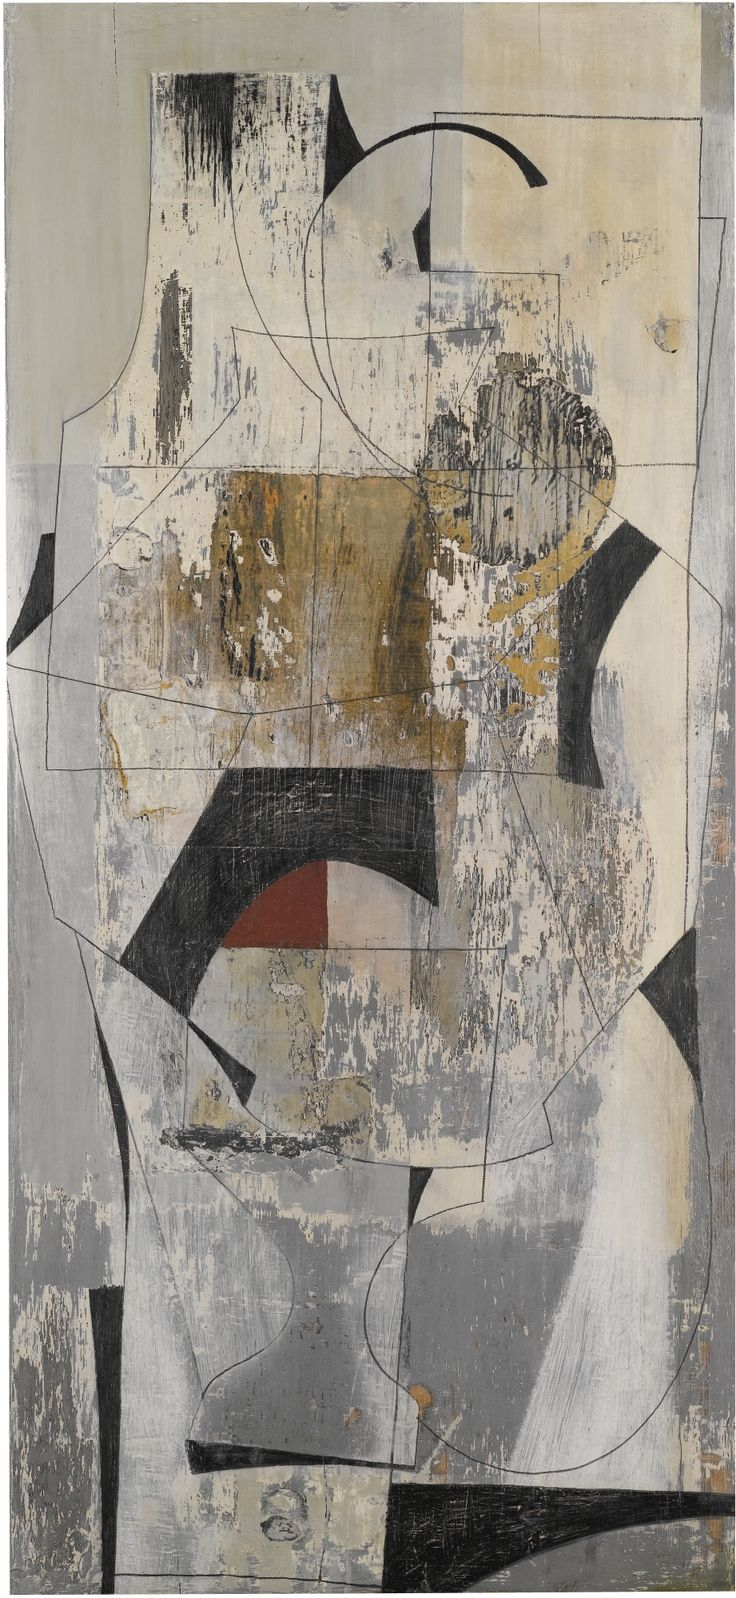 Ben Nicholson, AUG 24 - 52 (PALIMPSEST), oil and pencil and collage on panel, 107 x 51.5cm